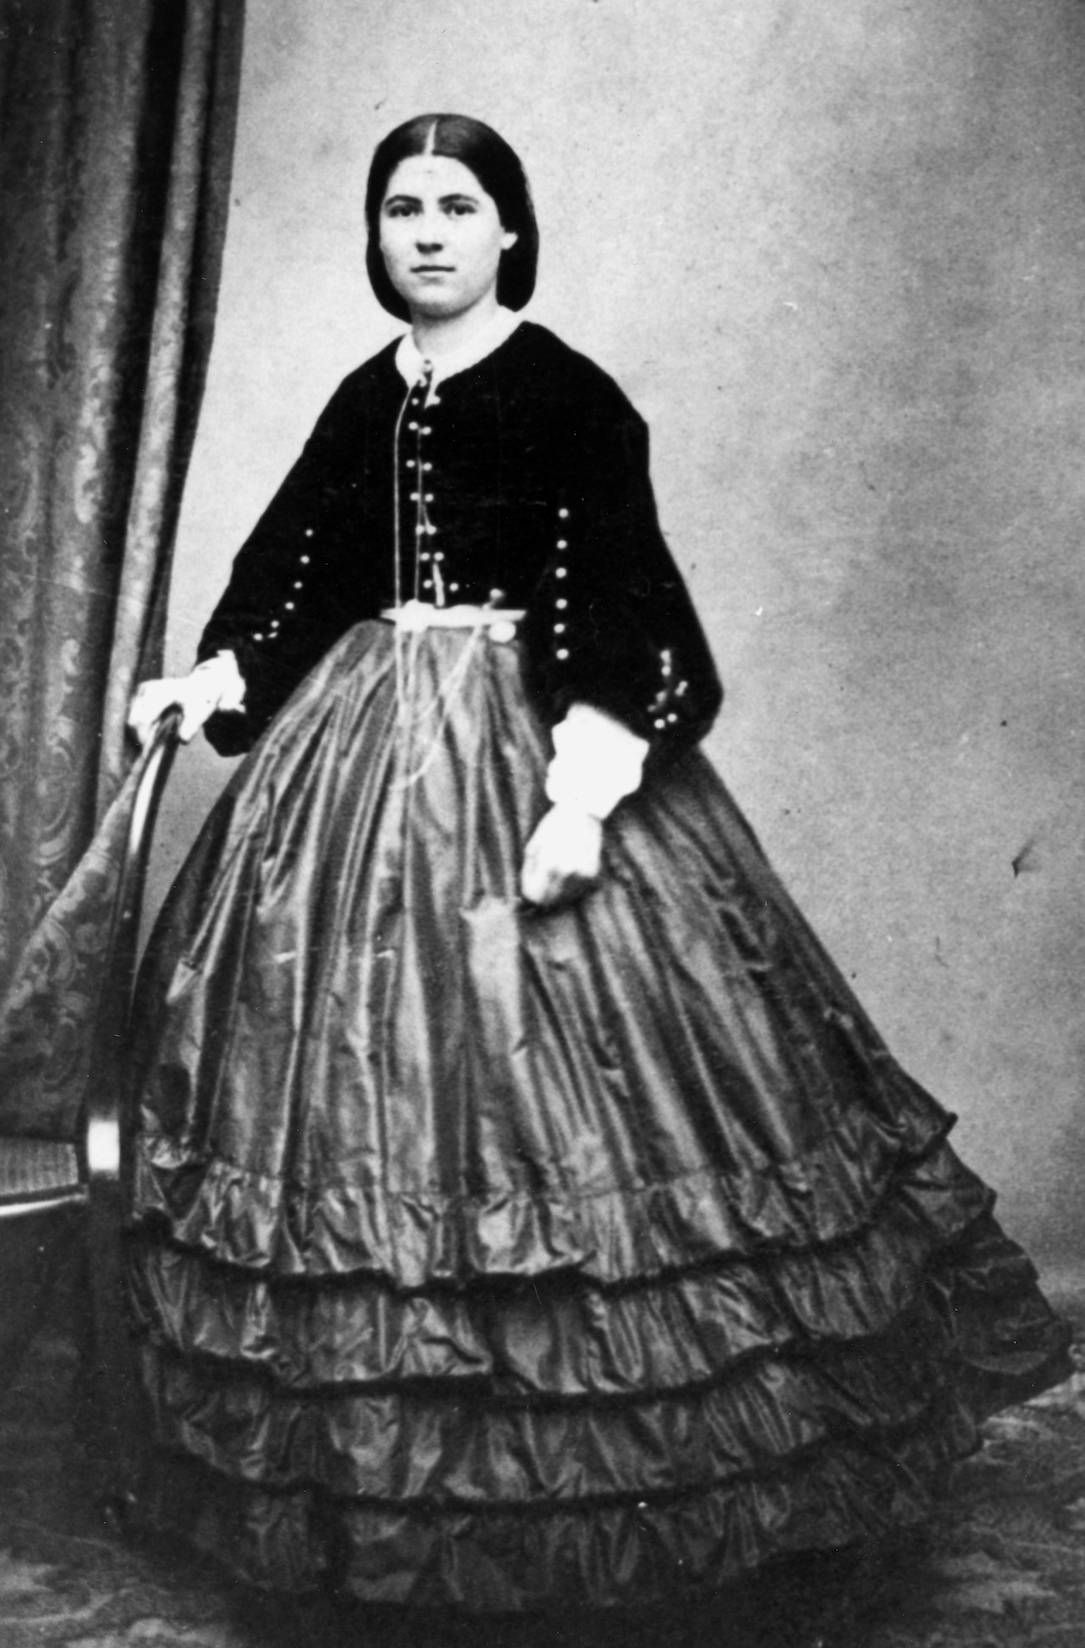 3c5245fcbd56 Maria Catherine Leith-Hay wearing a large ruffled skirt and short-waisted  jacket, c. 1860-1870. Image via John Oxley Library, State Library of  Queensland.